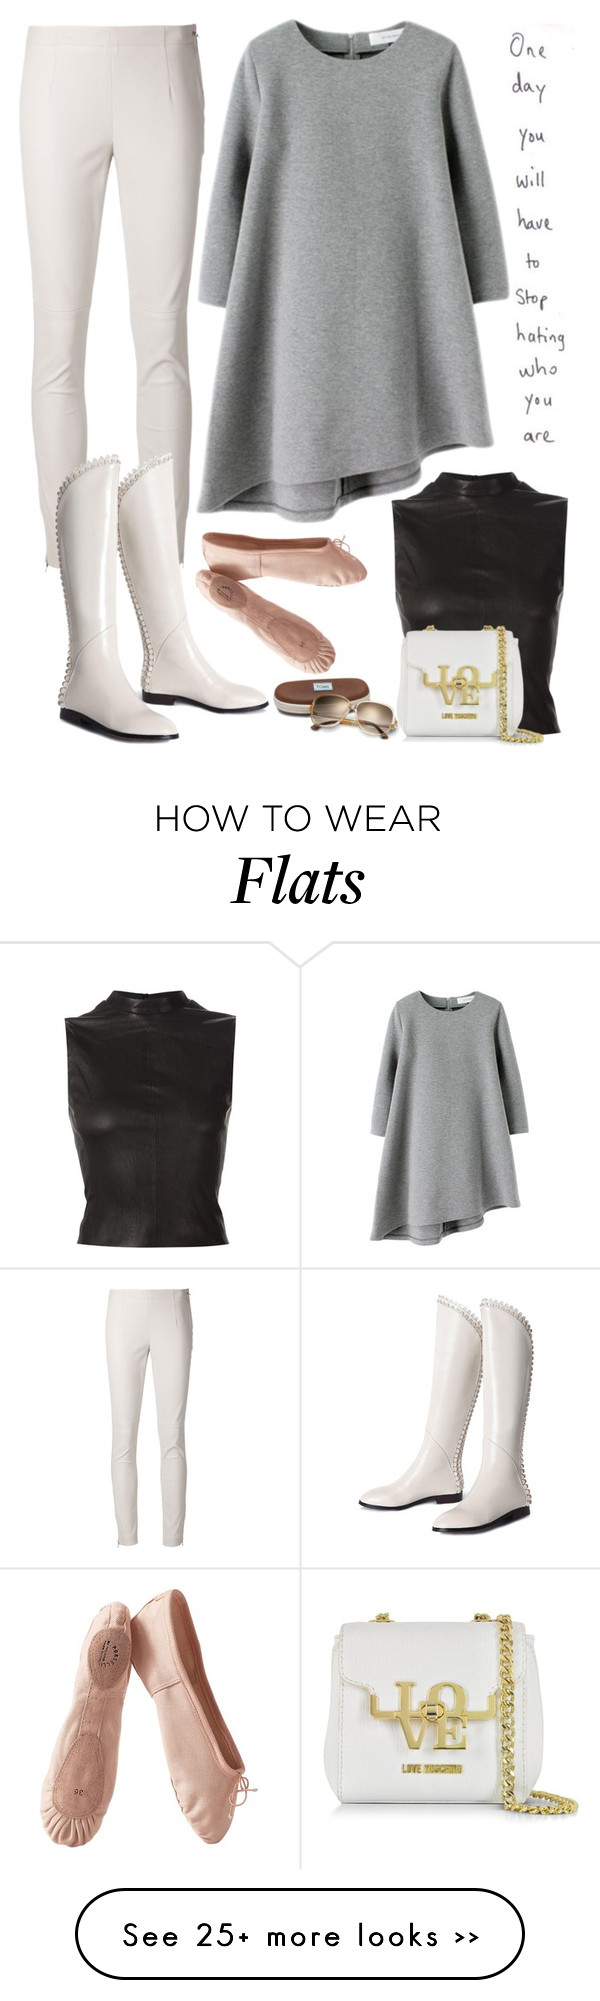 """in & out"" by didesi on Polyvore featuring KaufmanFranco, Le Ciel Bleu, Porselli, Narciso Rodriguez, TOMS and Moschino"